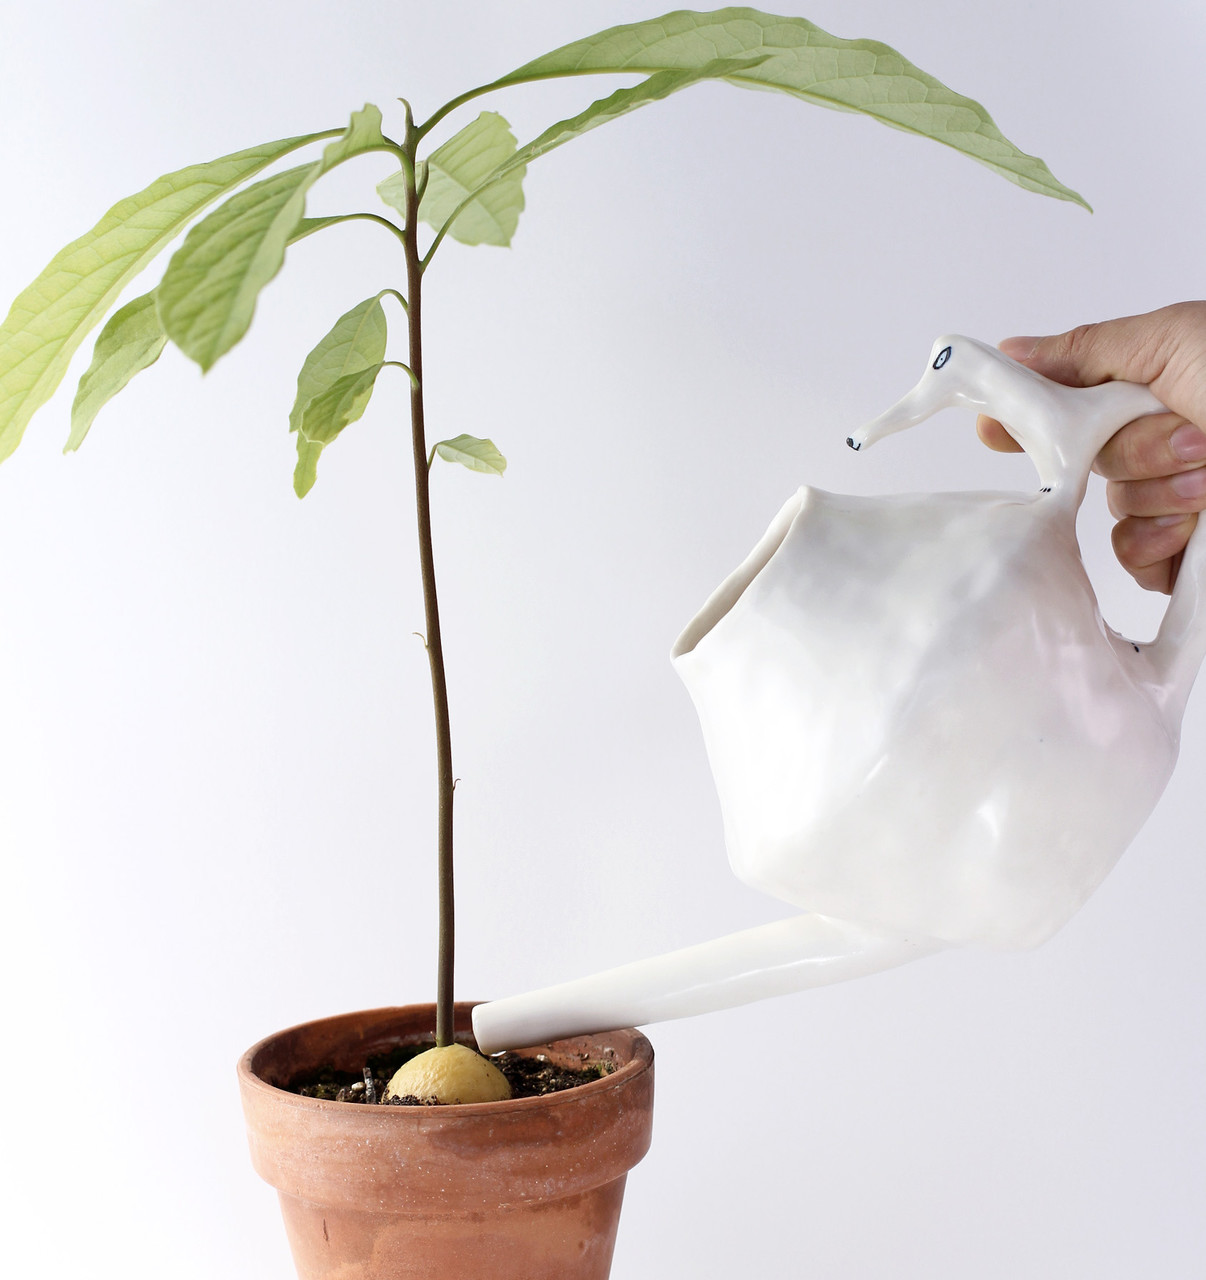 Never let your green friends perish with this satirical pot.